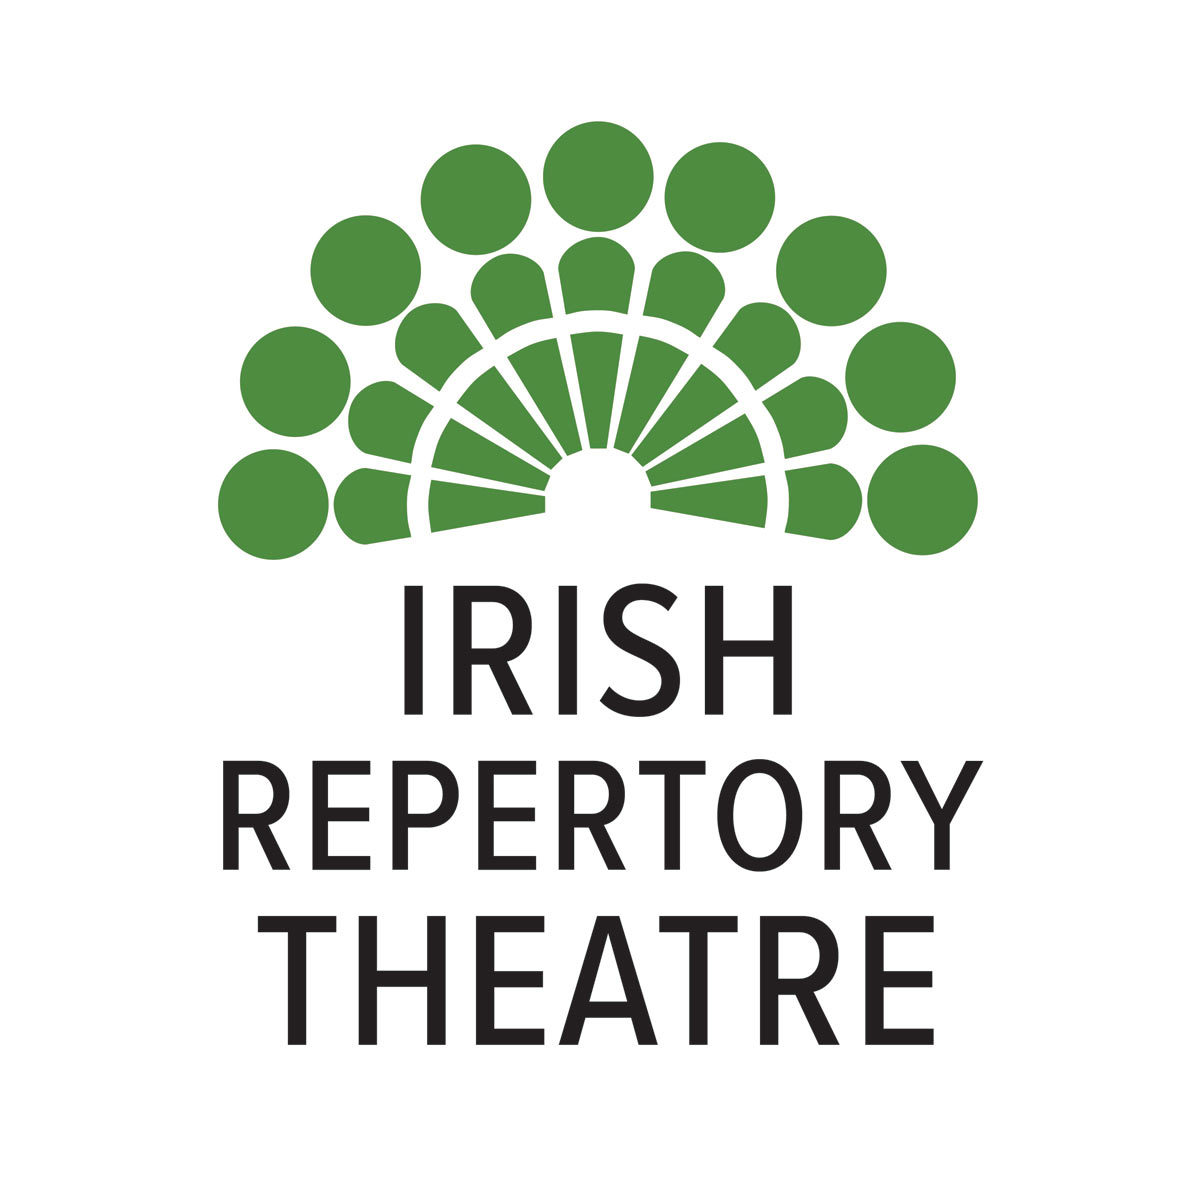 Irish Repertory Theatre: Producer in Off the Meter, On the Record